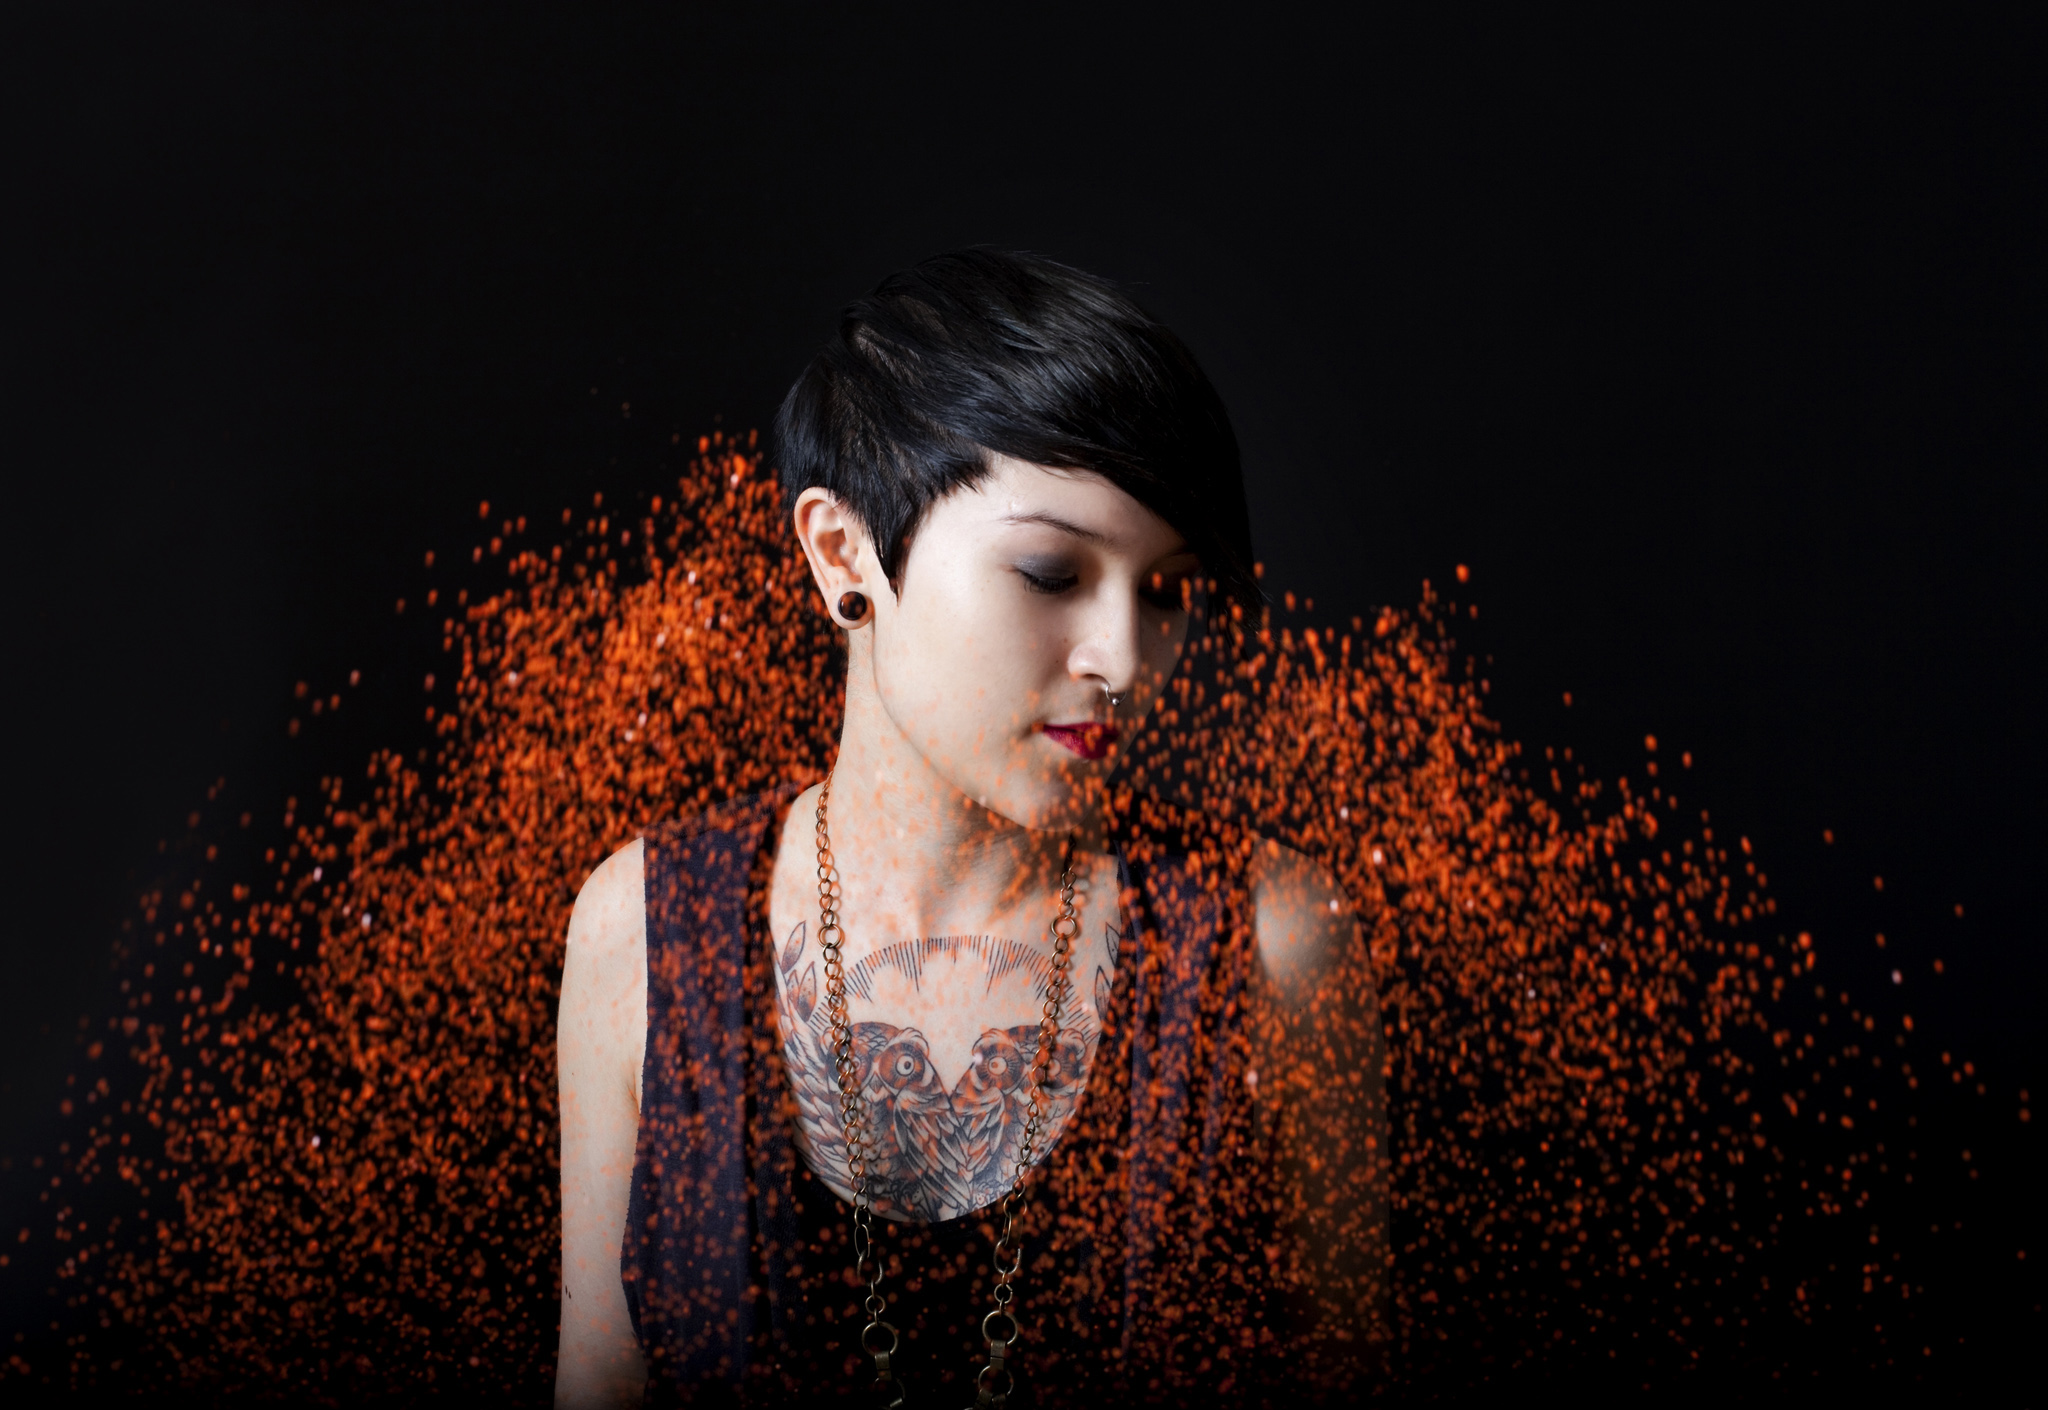 Maya Jane Coles / DJ Kicks